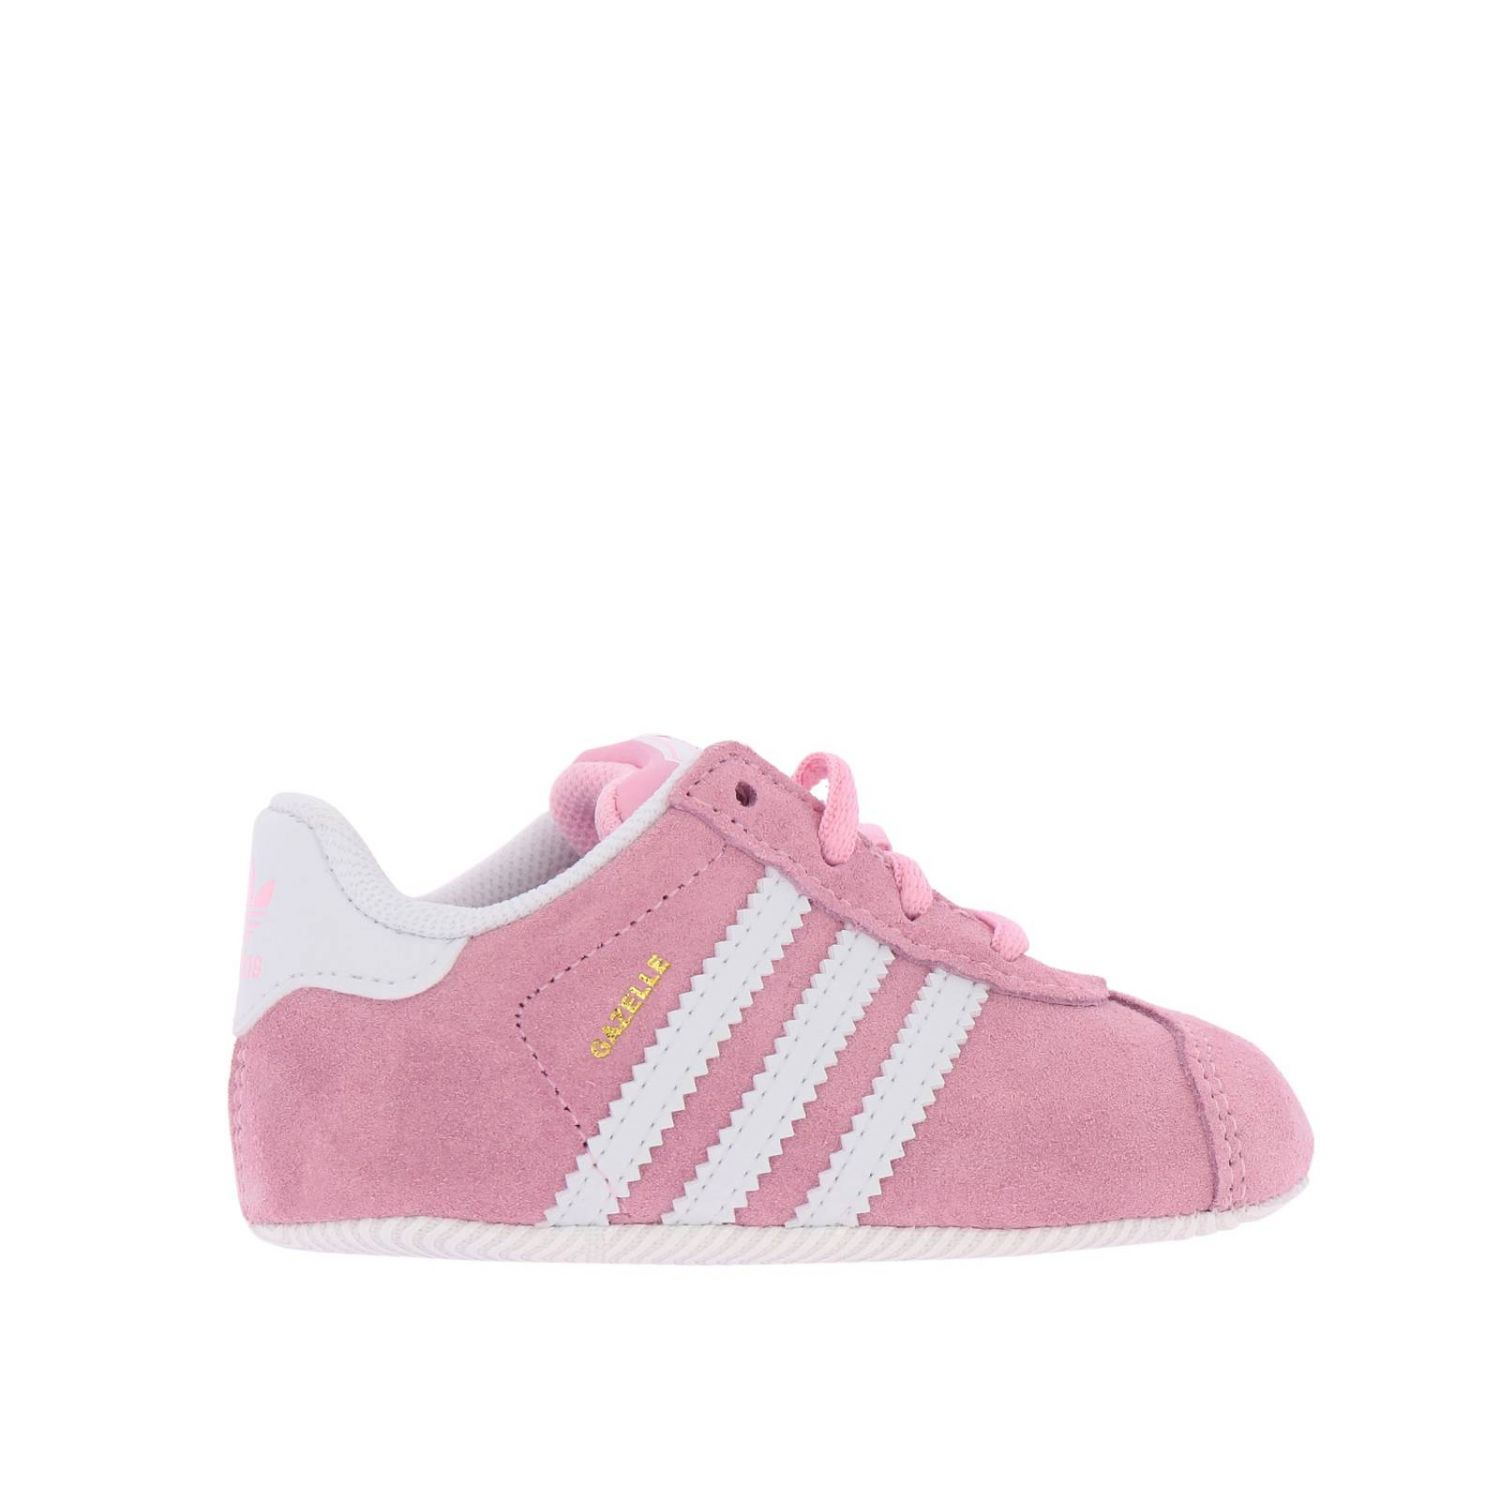 Shoes Adidas Originals: Gazelle Crib Adidas Originals Classic sneakers in suede and smooth leather pink 1